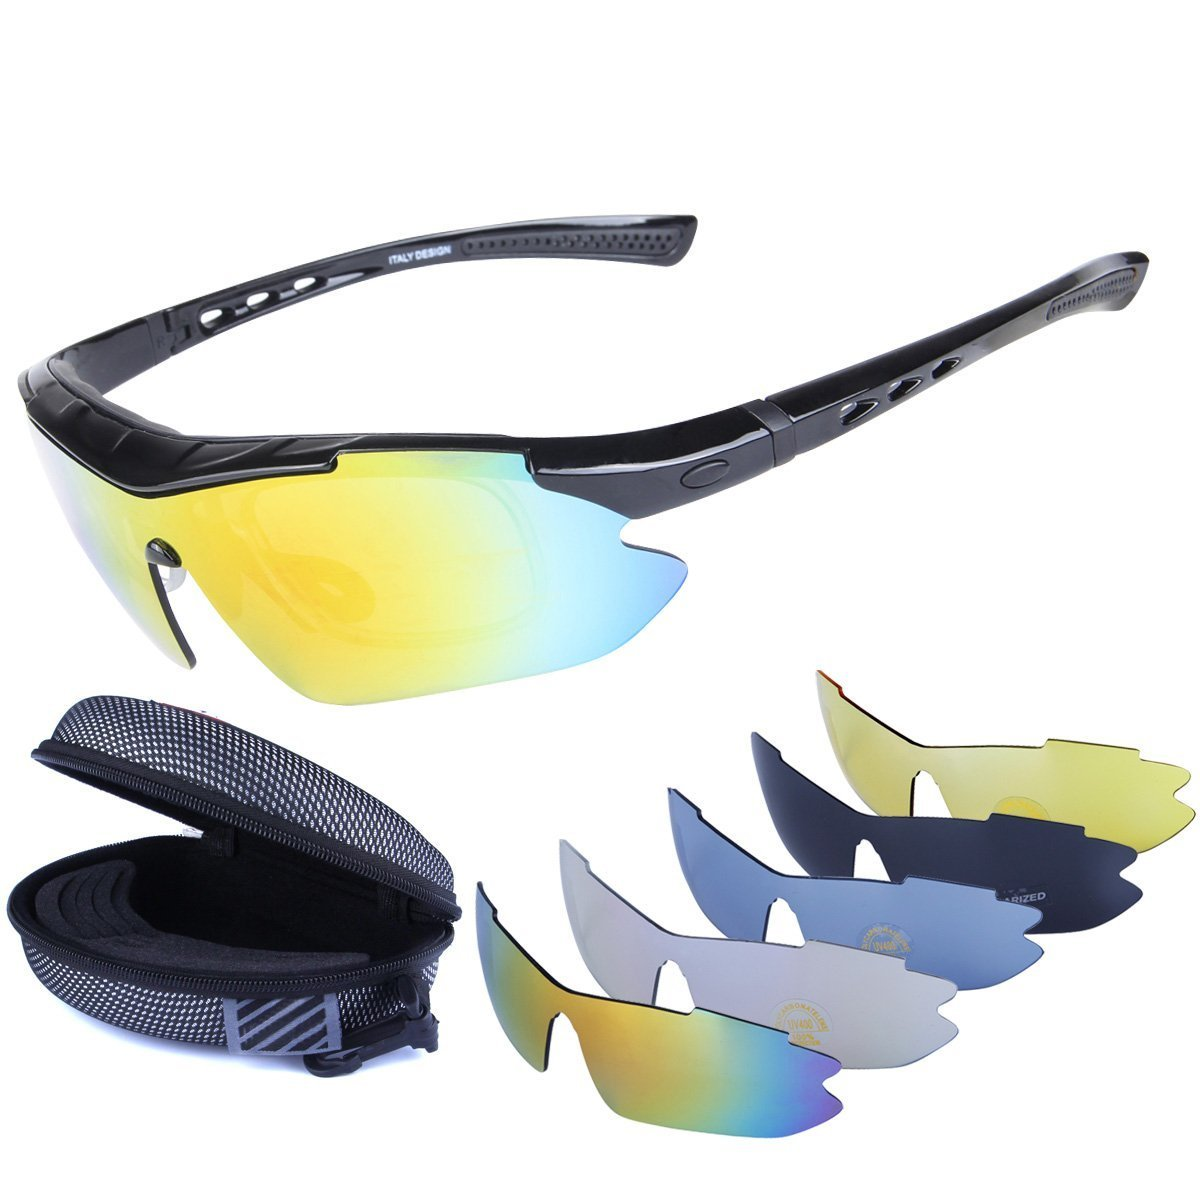 Polarized Sports Sunglasses Cycling Baseball Running Fishing Driving Golf Hiking Biking Outdoor Glasses with 5 Interchangeable Lenses OTG Motorcycle Bicycle Riding Goggles for Men Women Kids (black) by LOVE'S (Image #1)